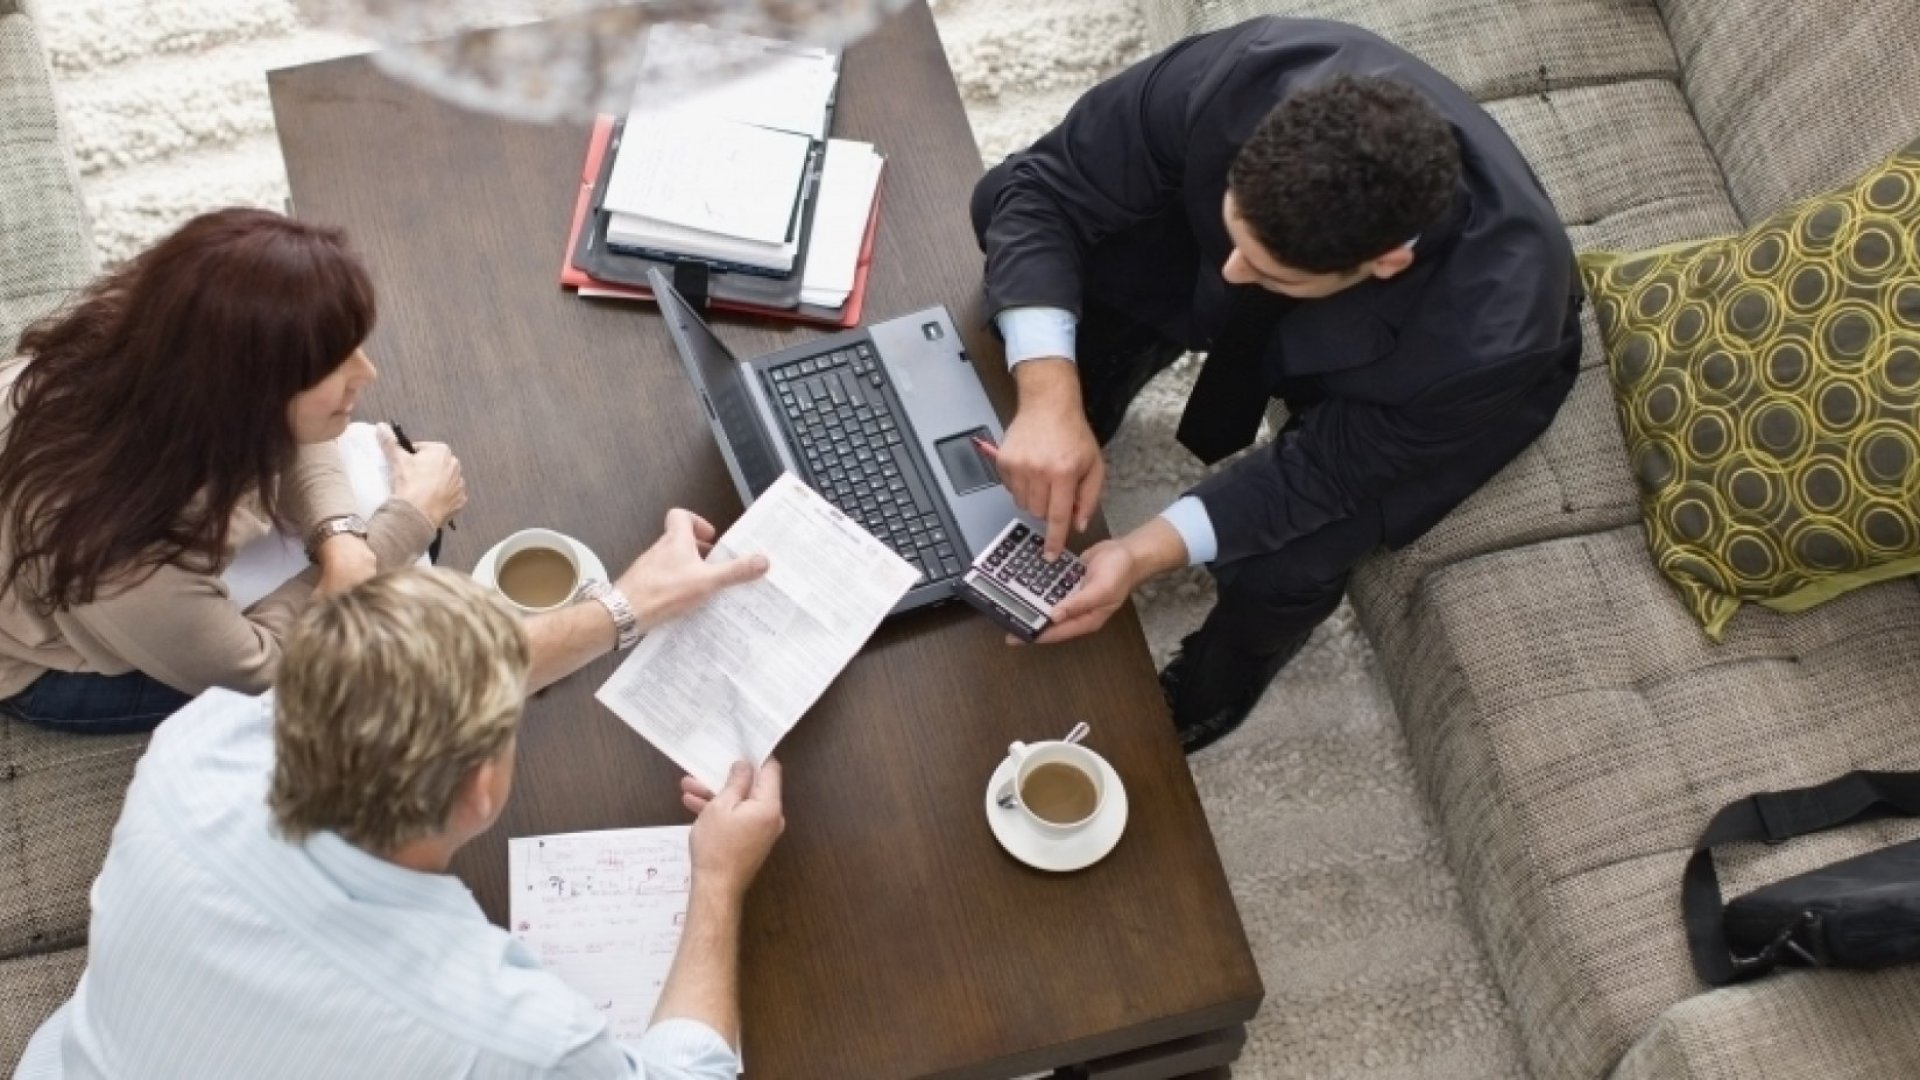 5 Questions You Must Ask Yourself Before Hiring a Consultant